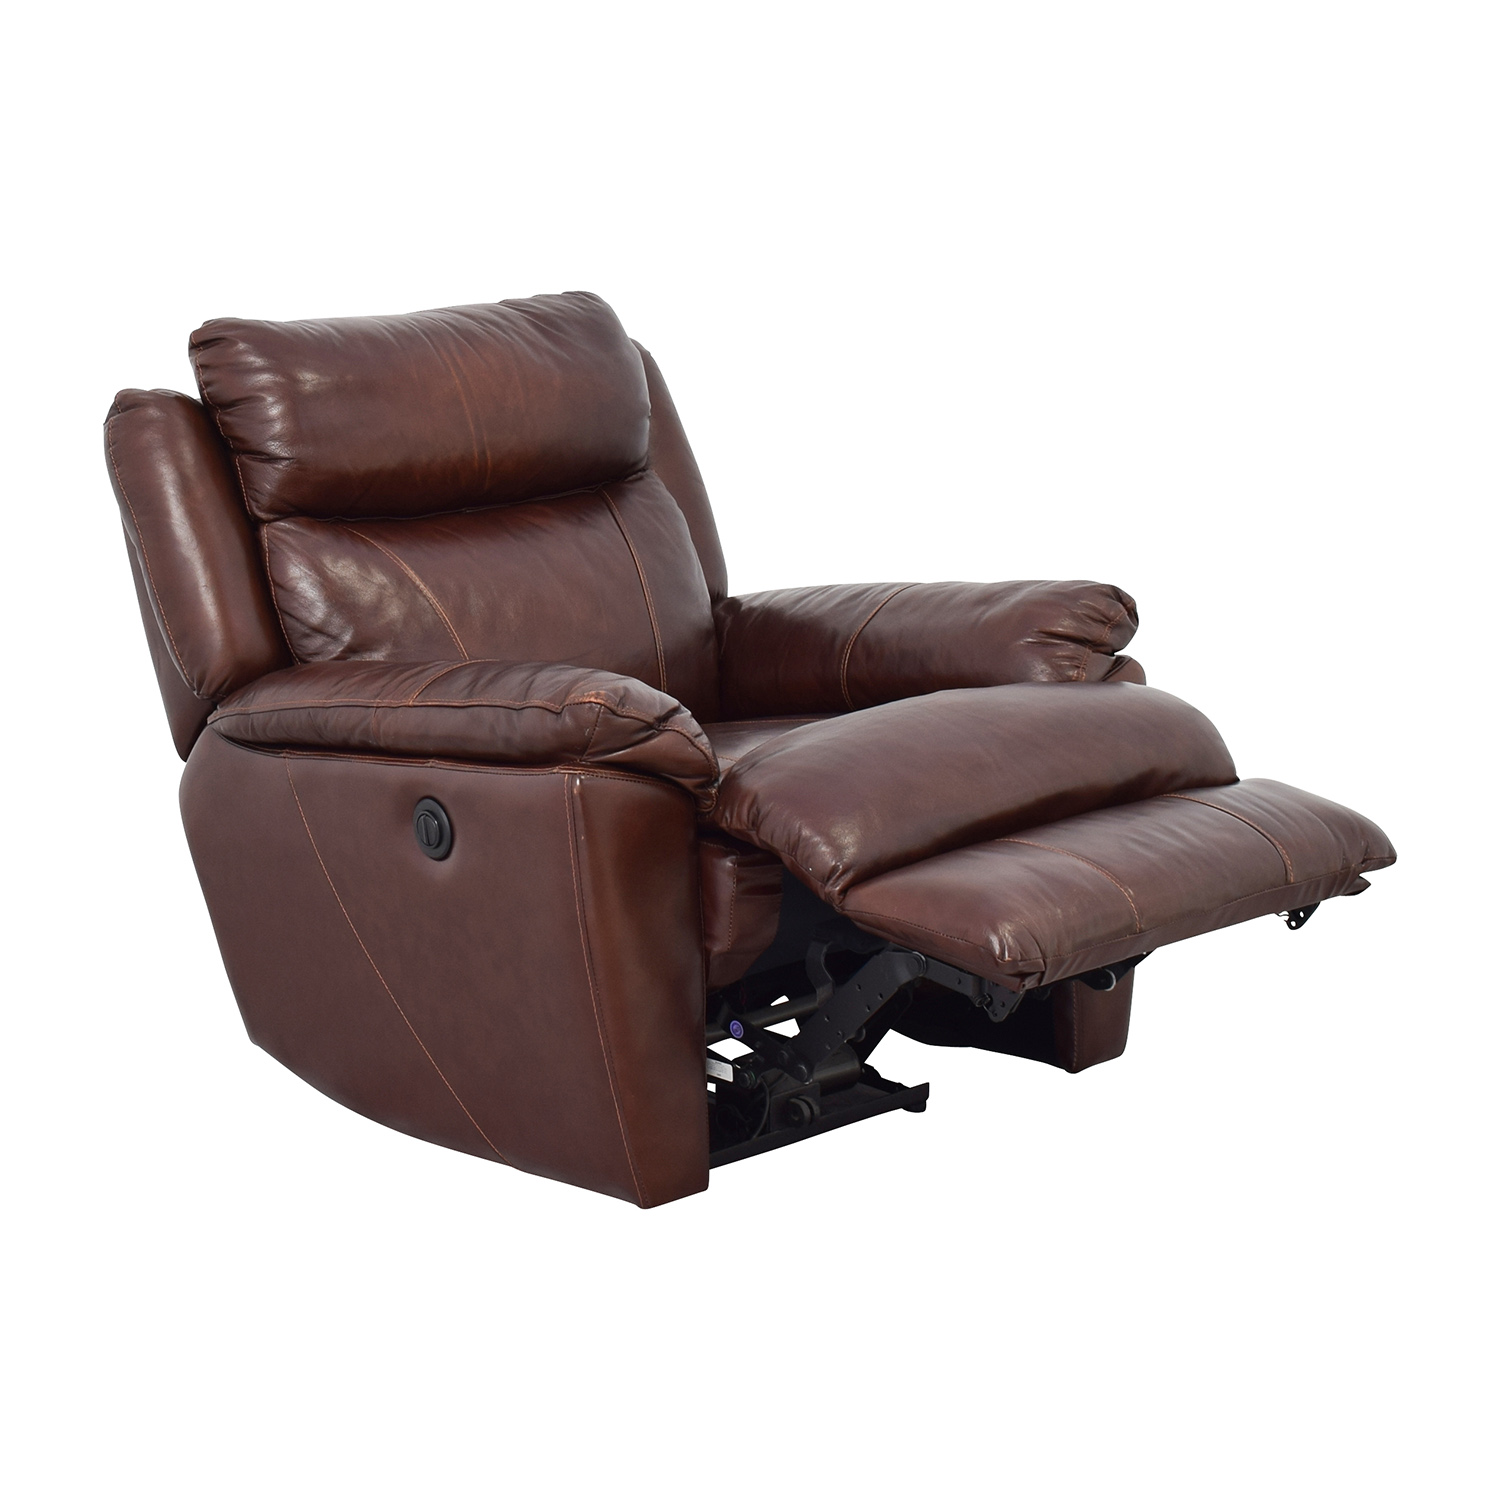 Macys Leather Chair 61 Off Macy 39s Macy 39s Brown Leather Power Recliner Chairs